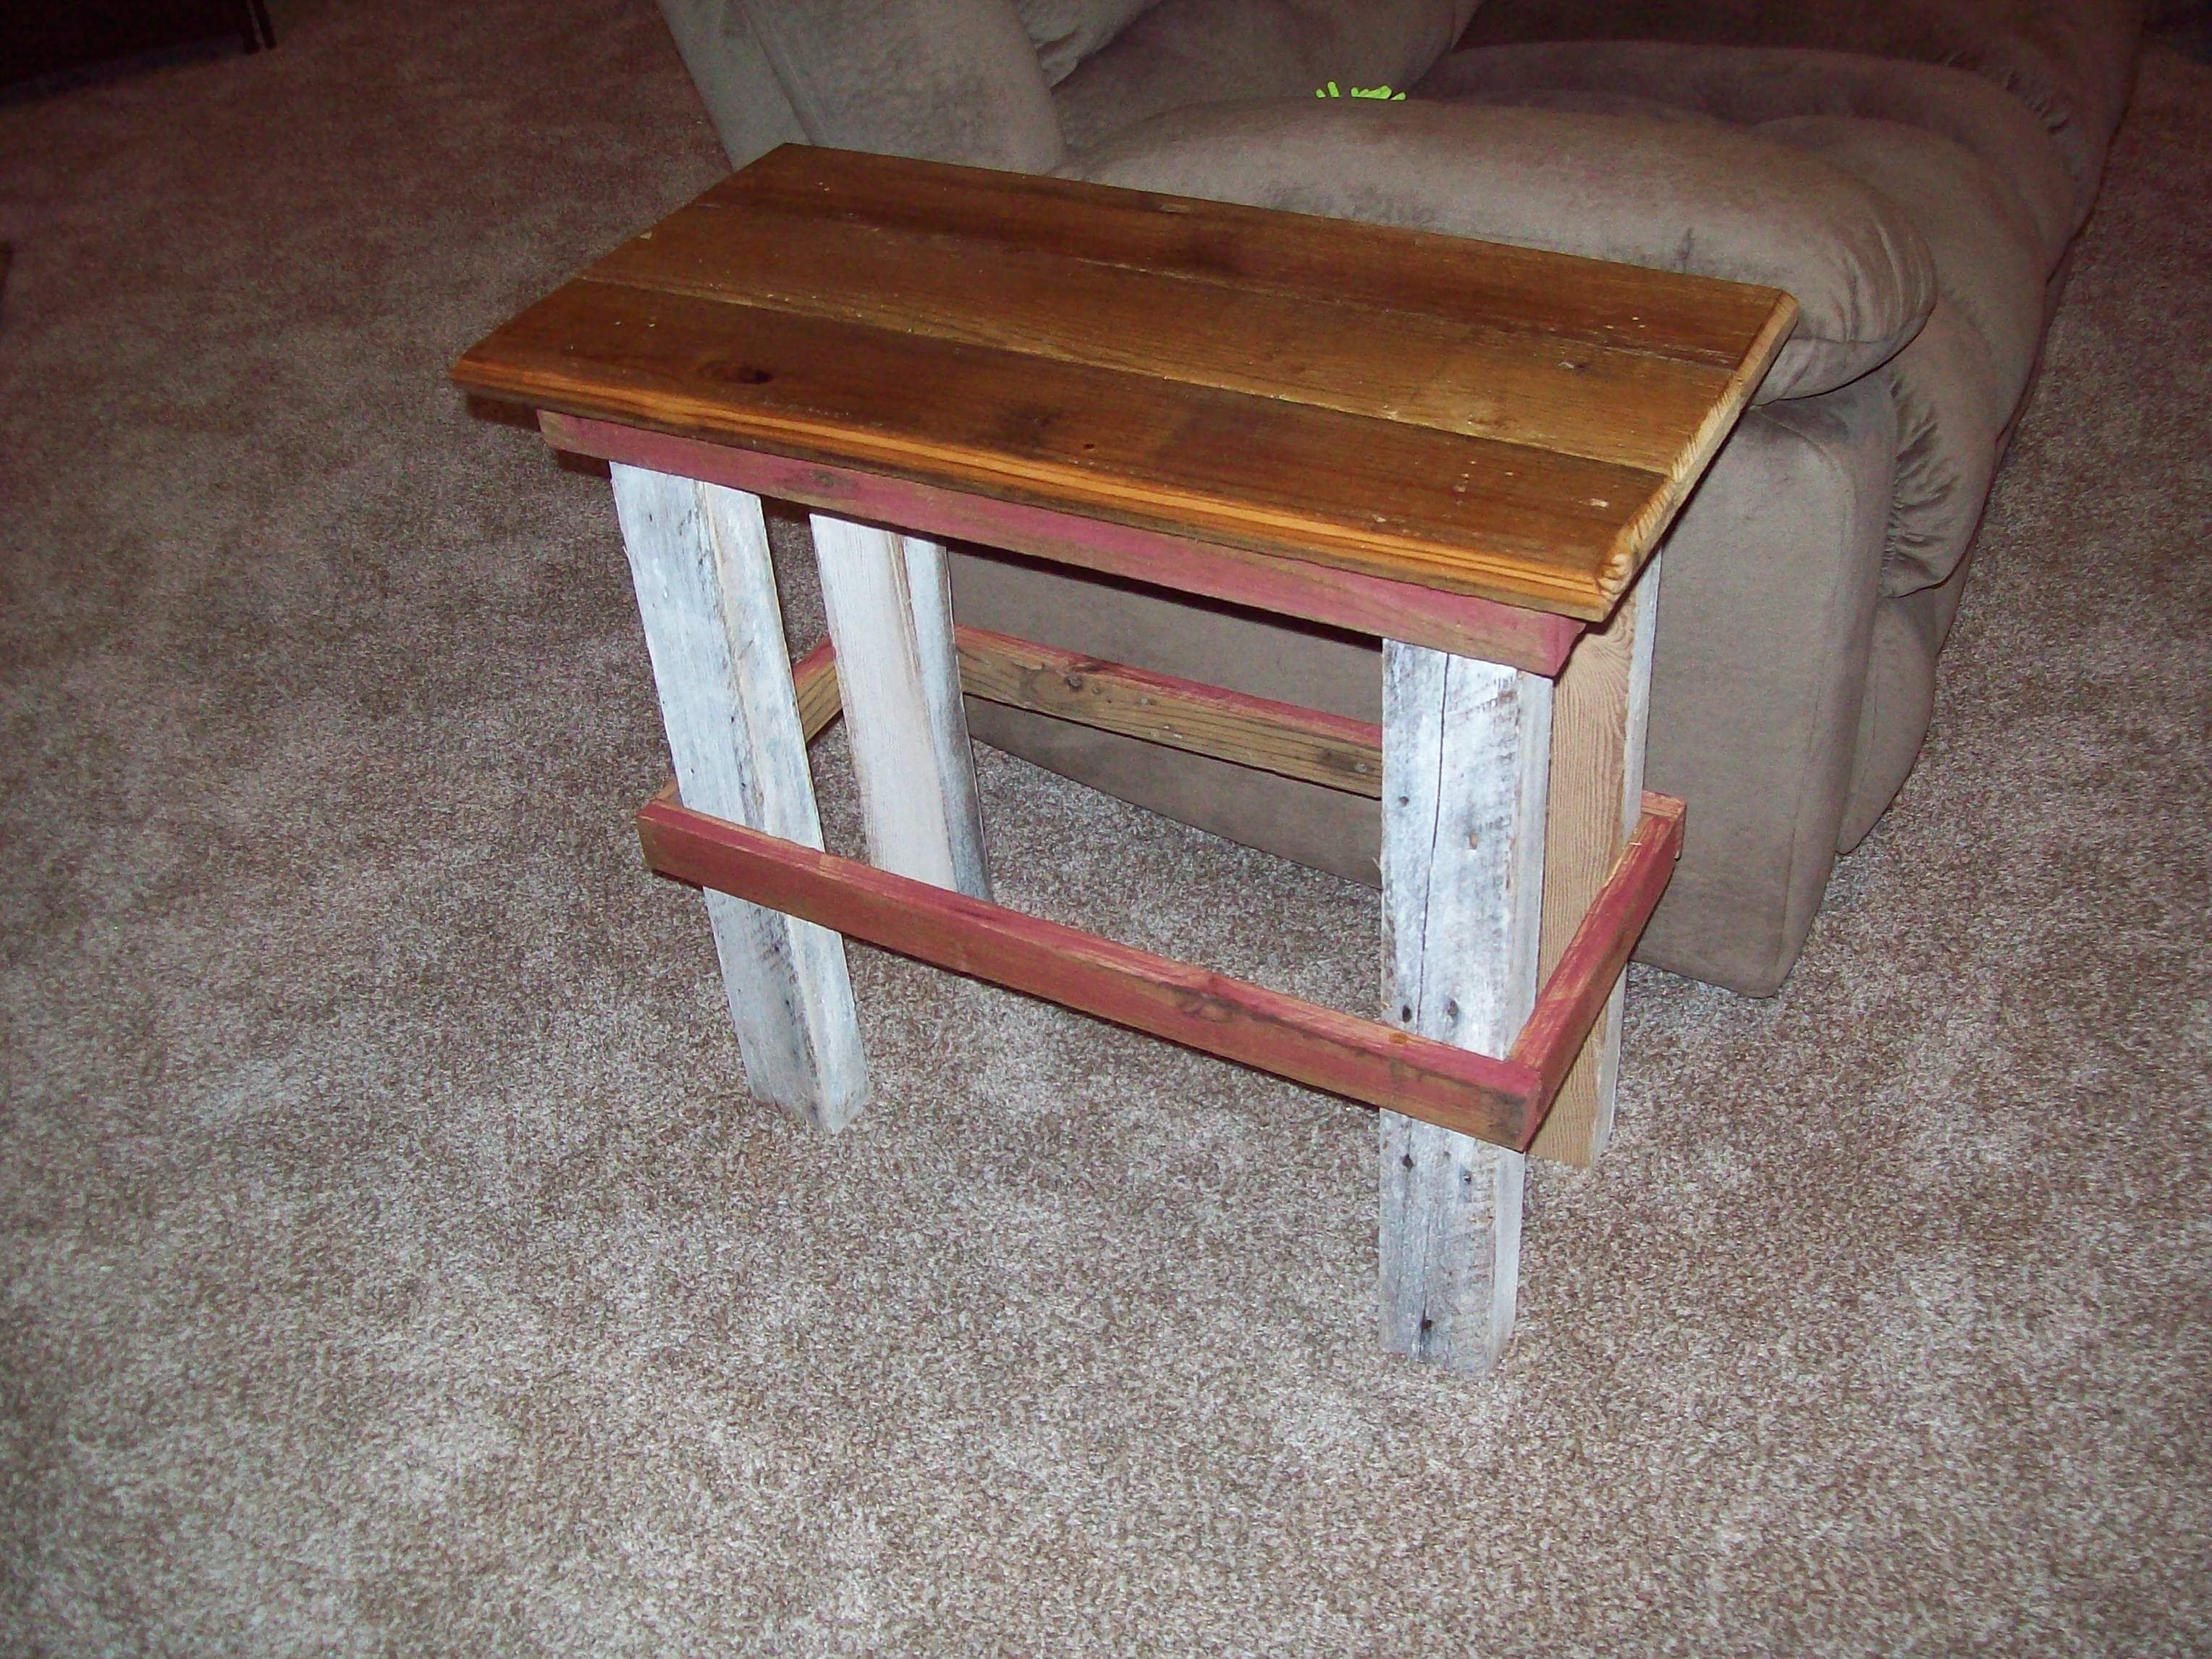 Old Real Reclaimed 2x4 Legs Tongue And Groove Board Top From Salvaged Barn Wood 2 Coats Of Poly On T G And White Wash Legs And Re Barn Wood Wood Step Stool